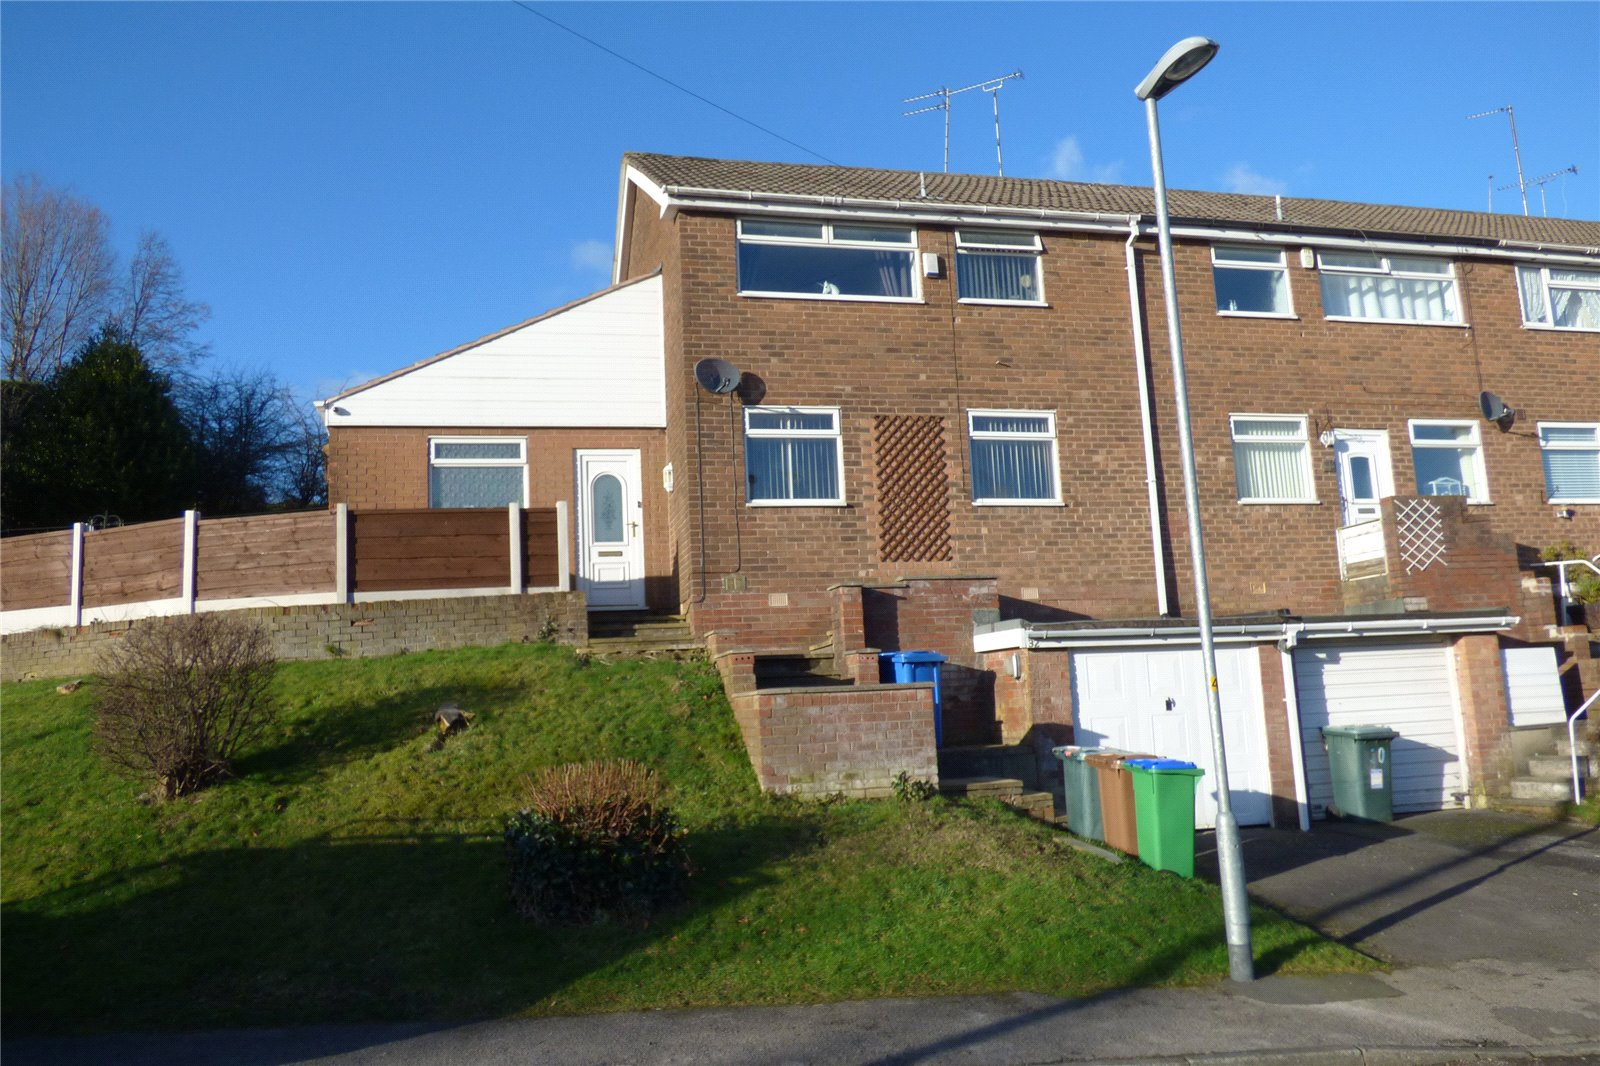 3 Bedrooms End Of Terrace House for sale in Schoolside Lane, Rhodes, Middleton, Manchester, M24